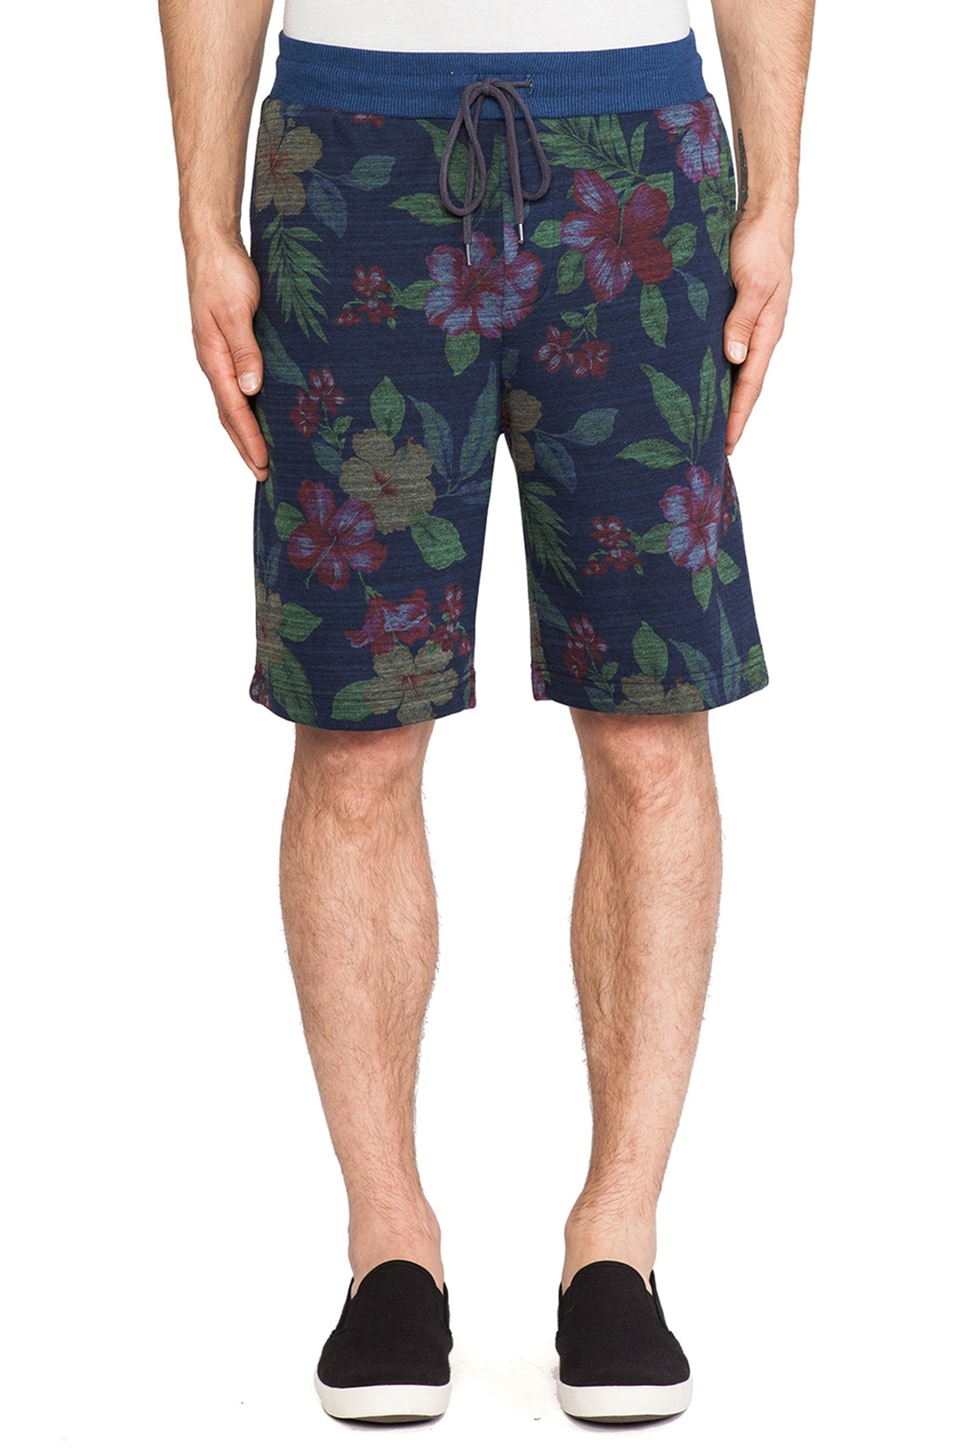 Shades of Grey by Micah Cohen Sweatshort in Navy Floral